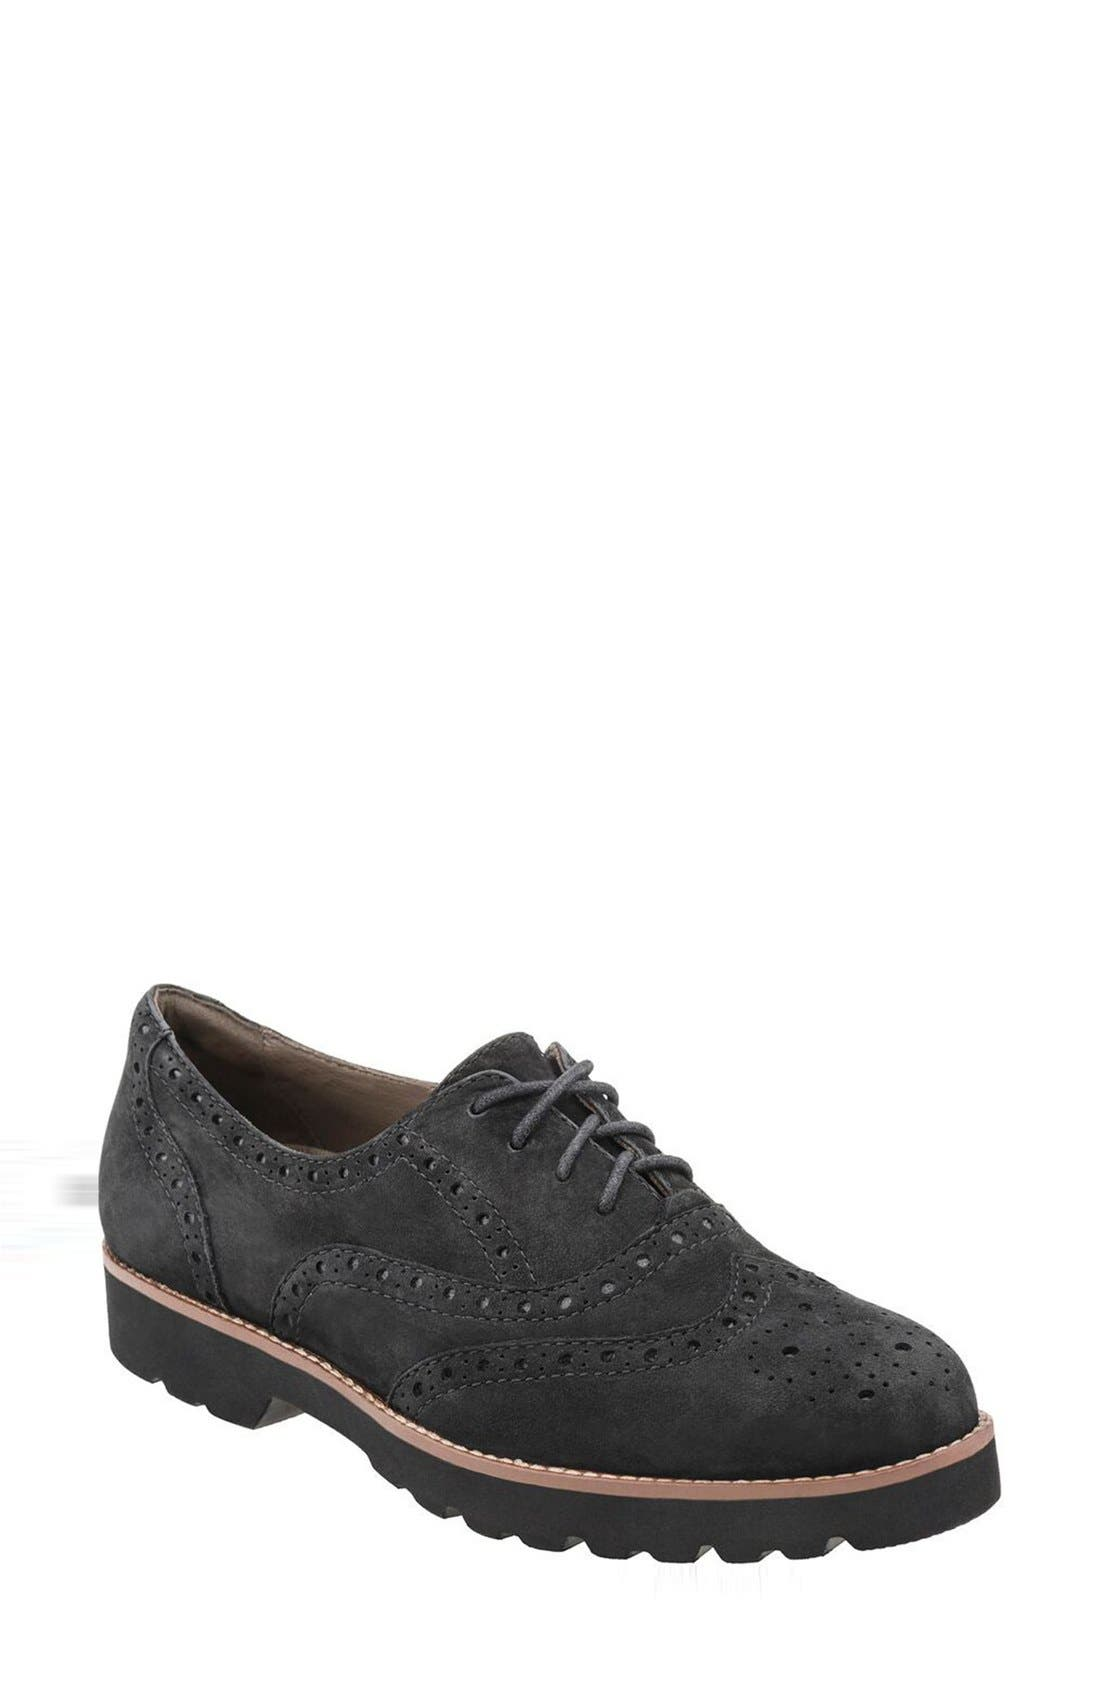 EARTHIES® 'Santana' Wingtip Oxford